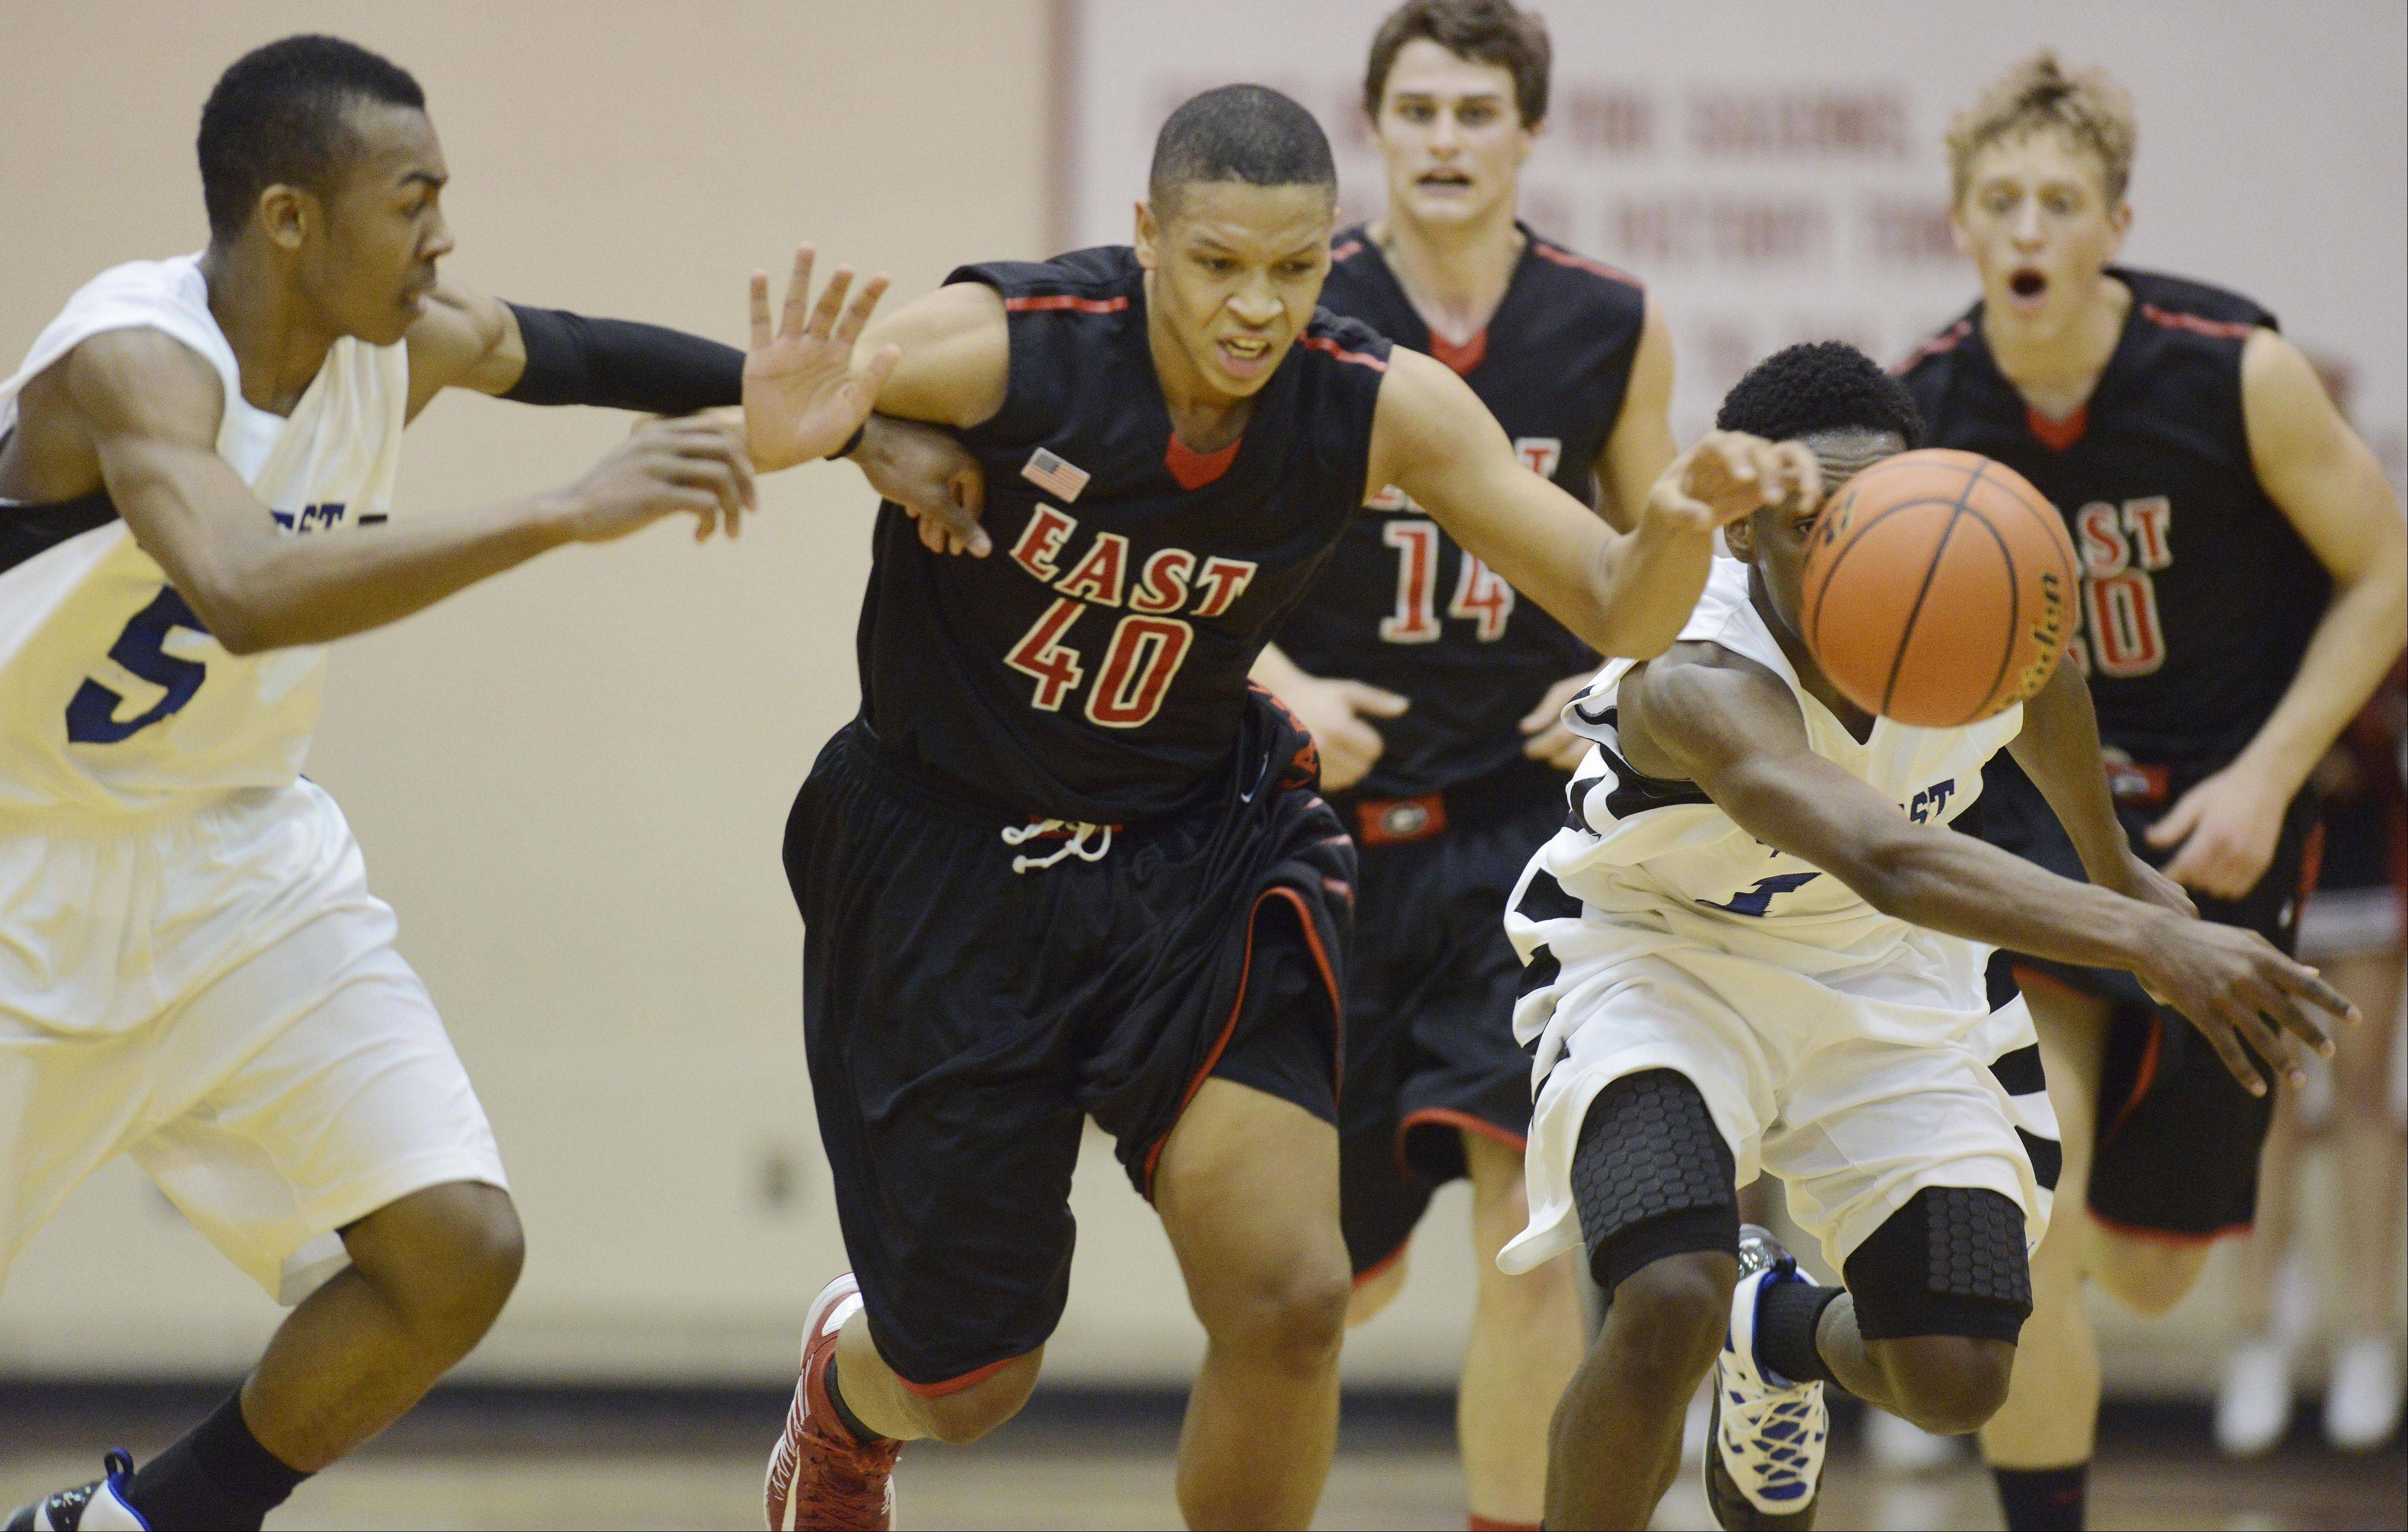 Images: Glenbard East vs. Proviso East, boys sectional basketball